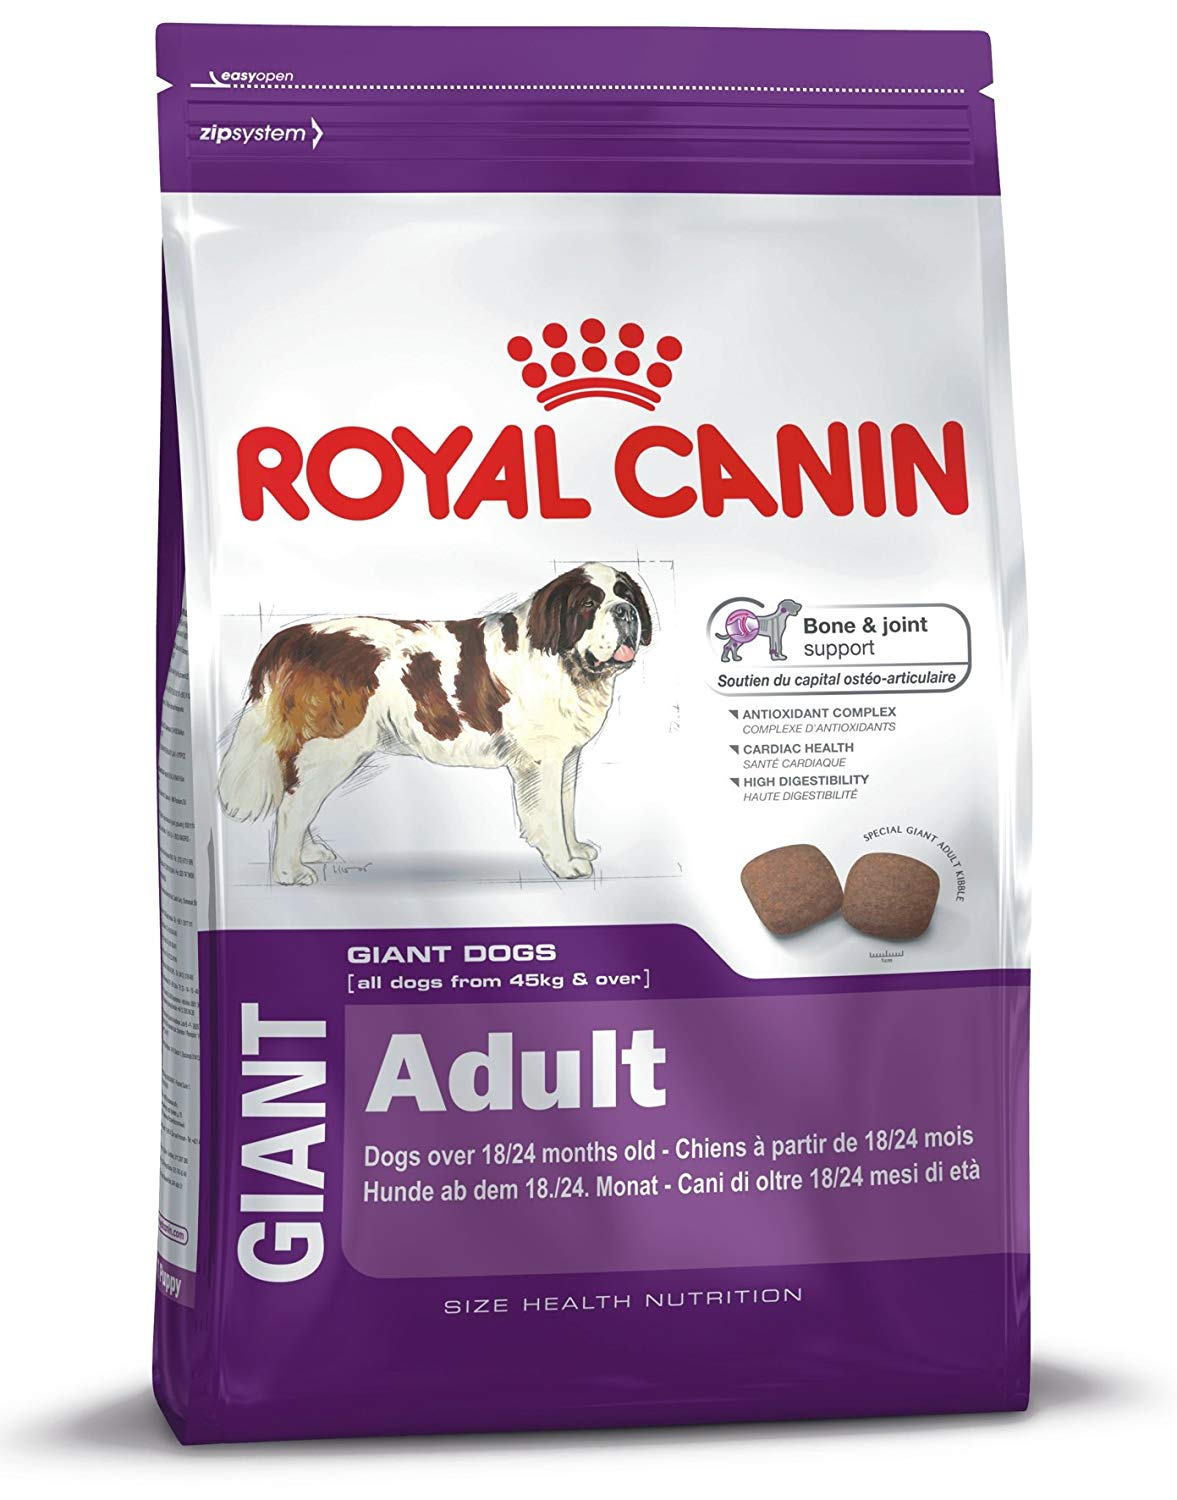 Royal Canin Adult Giant